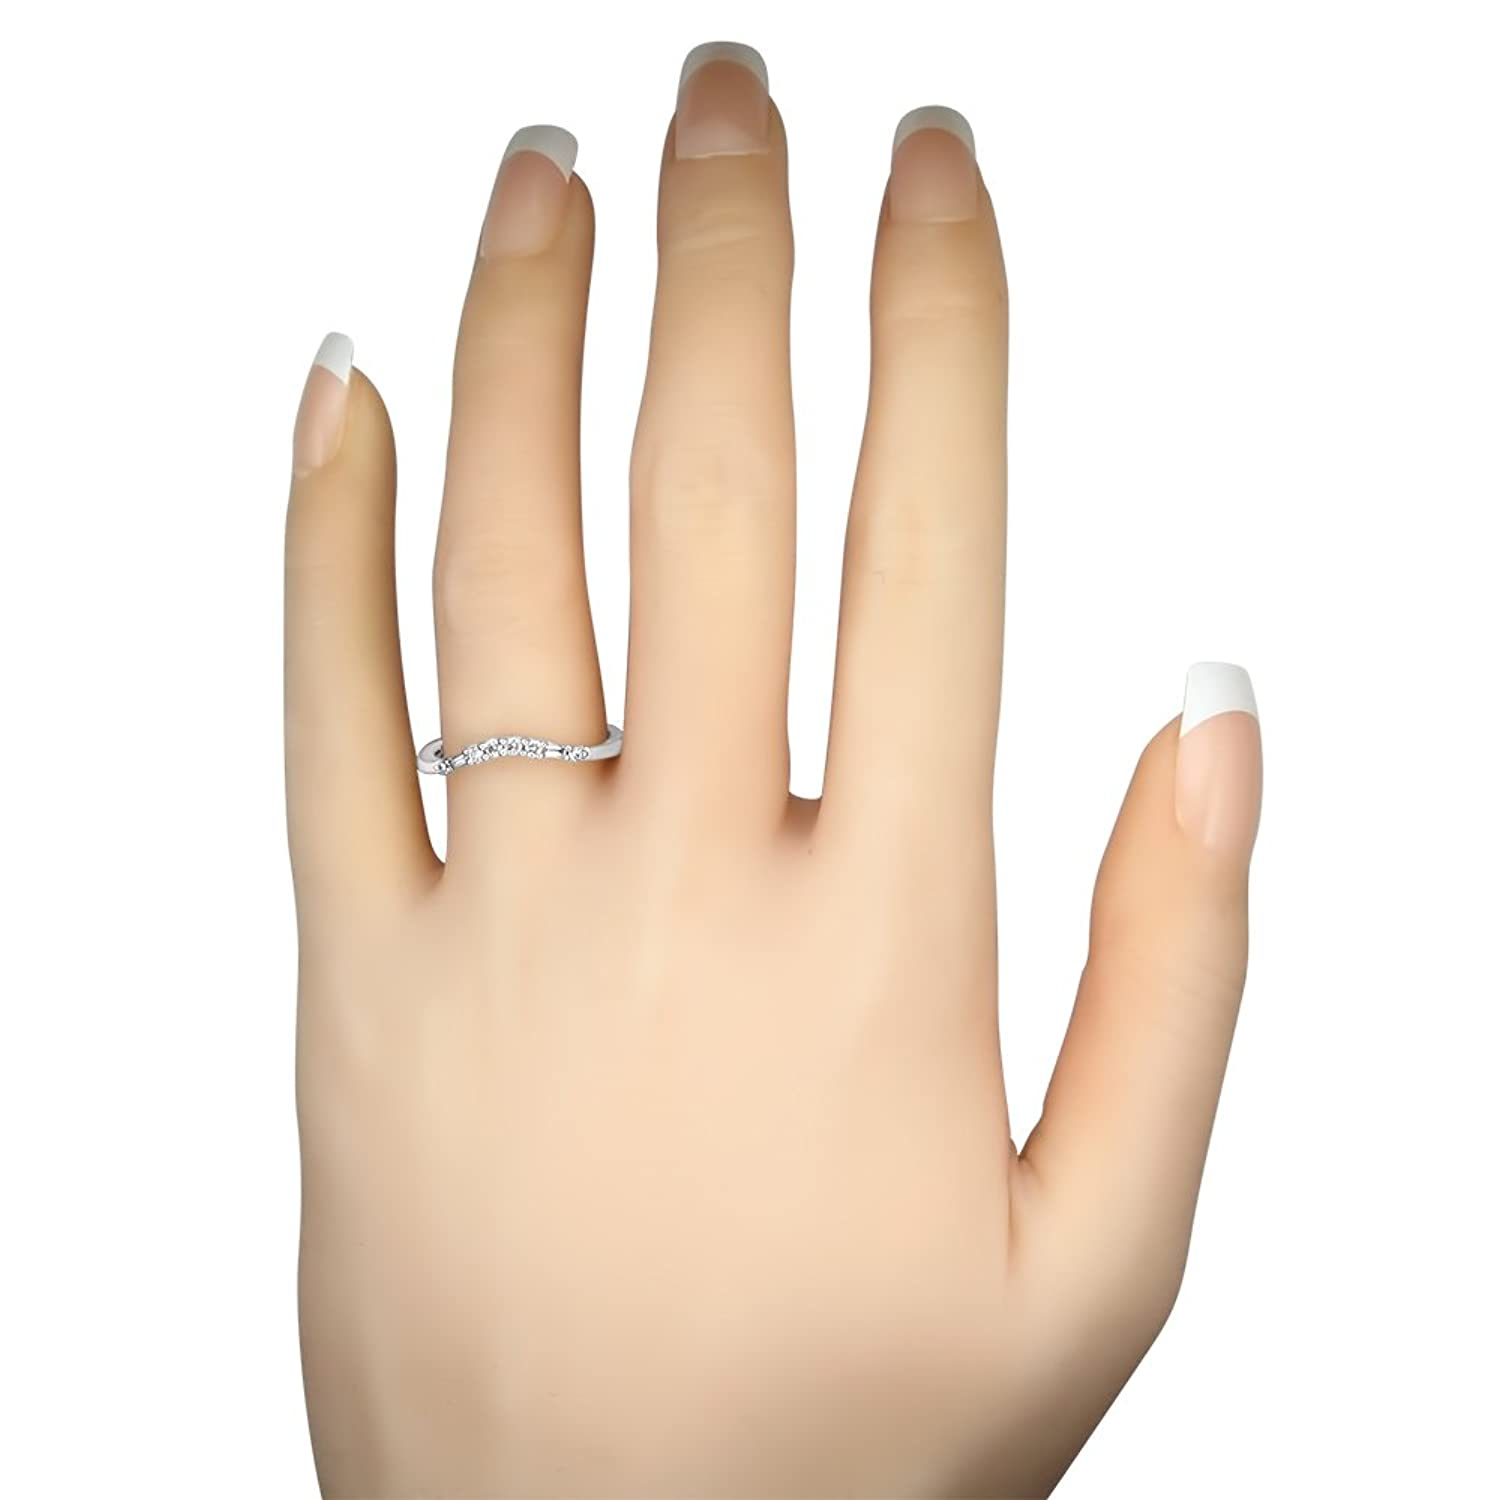 diamond uk rings white wedding contour claw co womens curve micro bands shaped gold band platinum